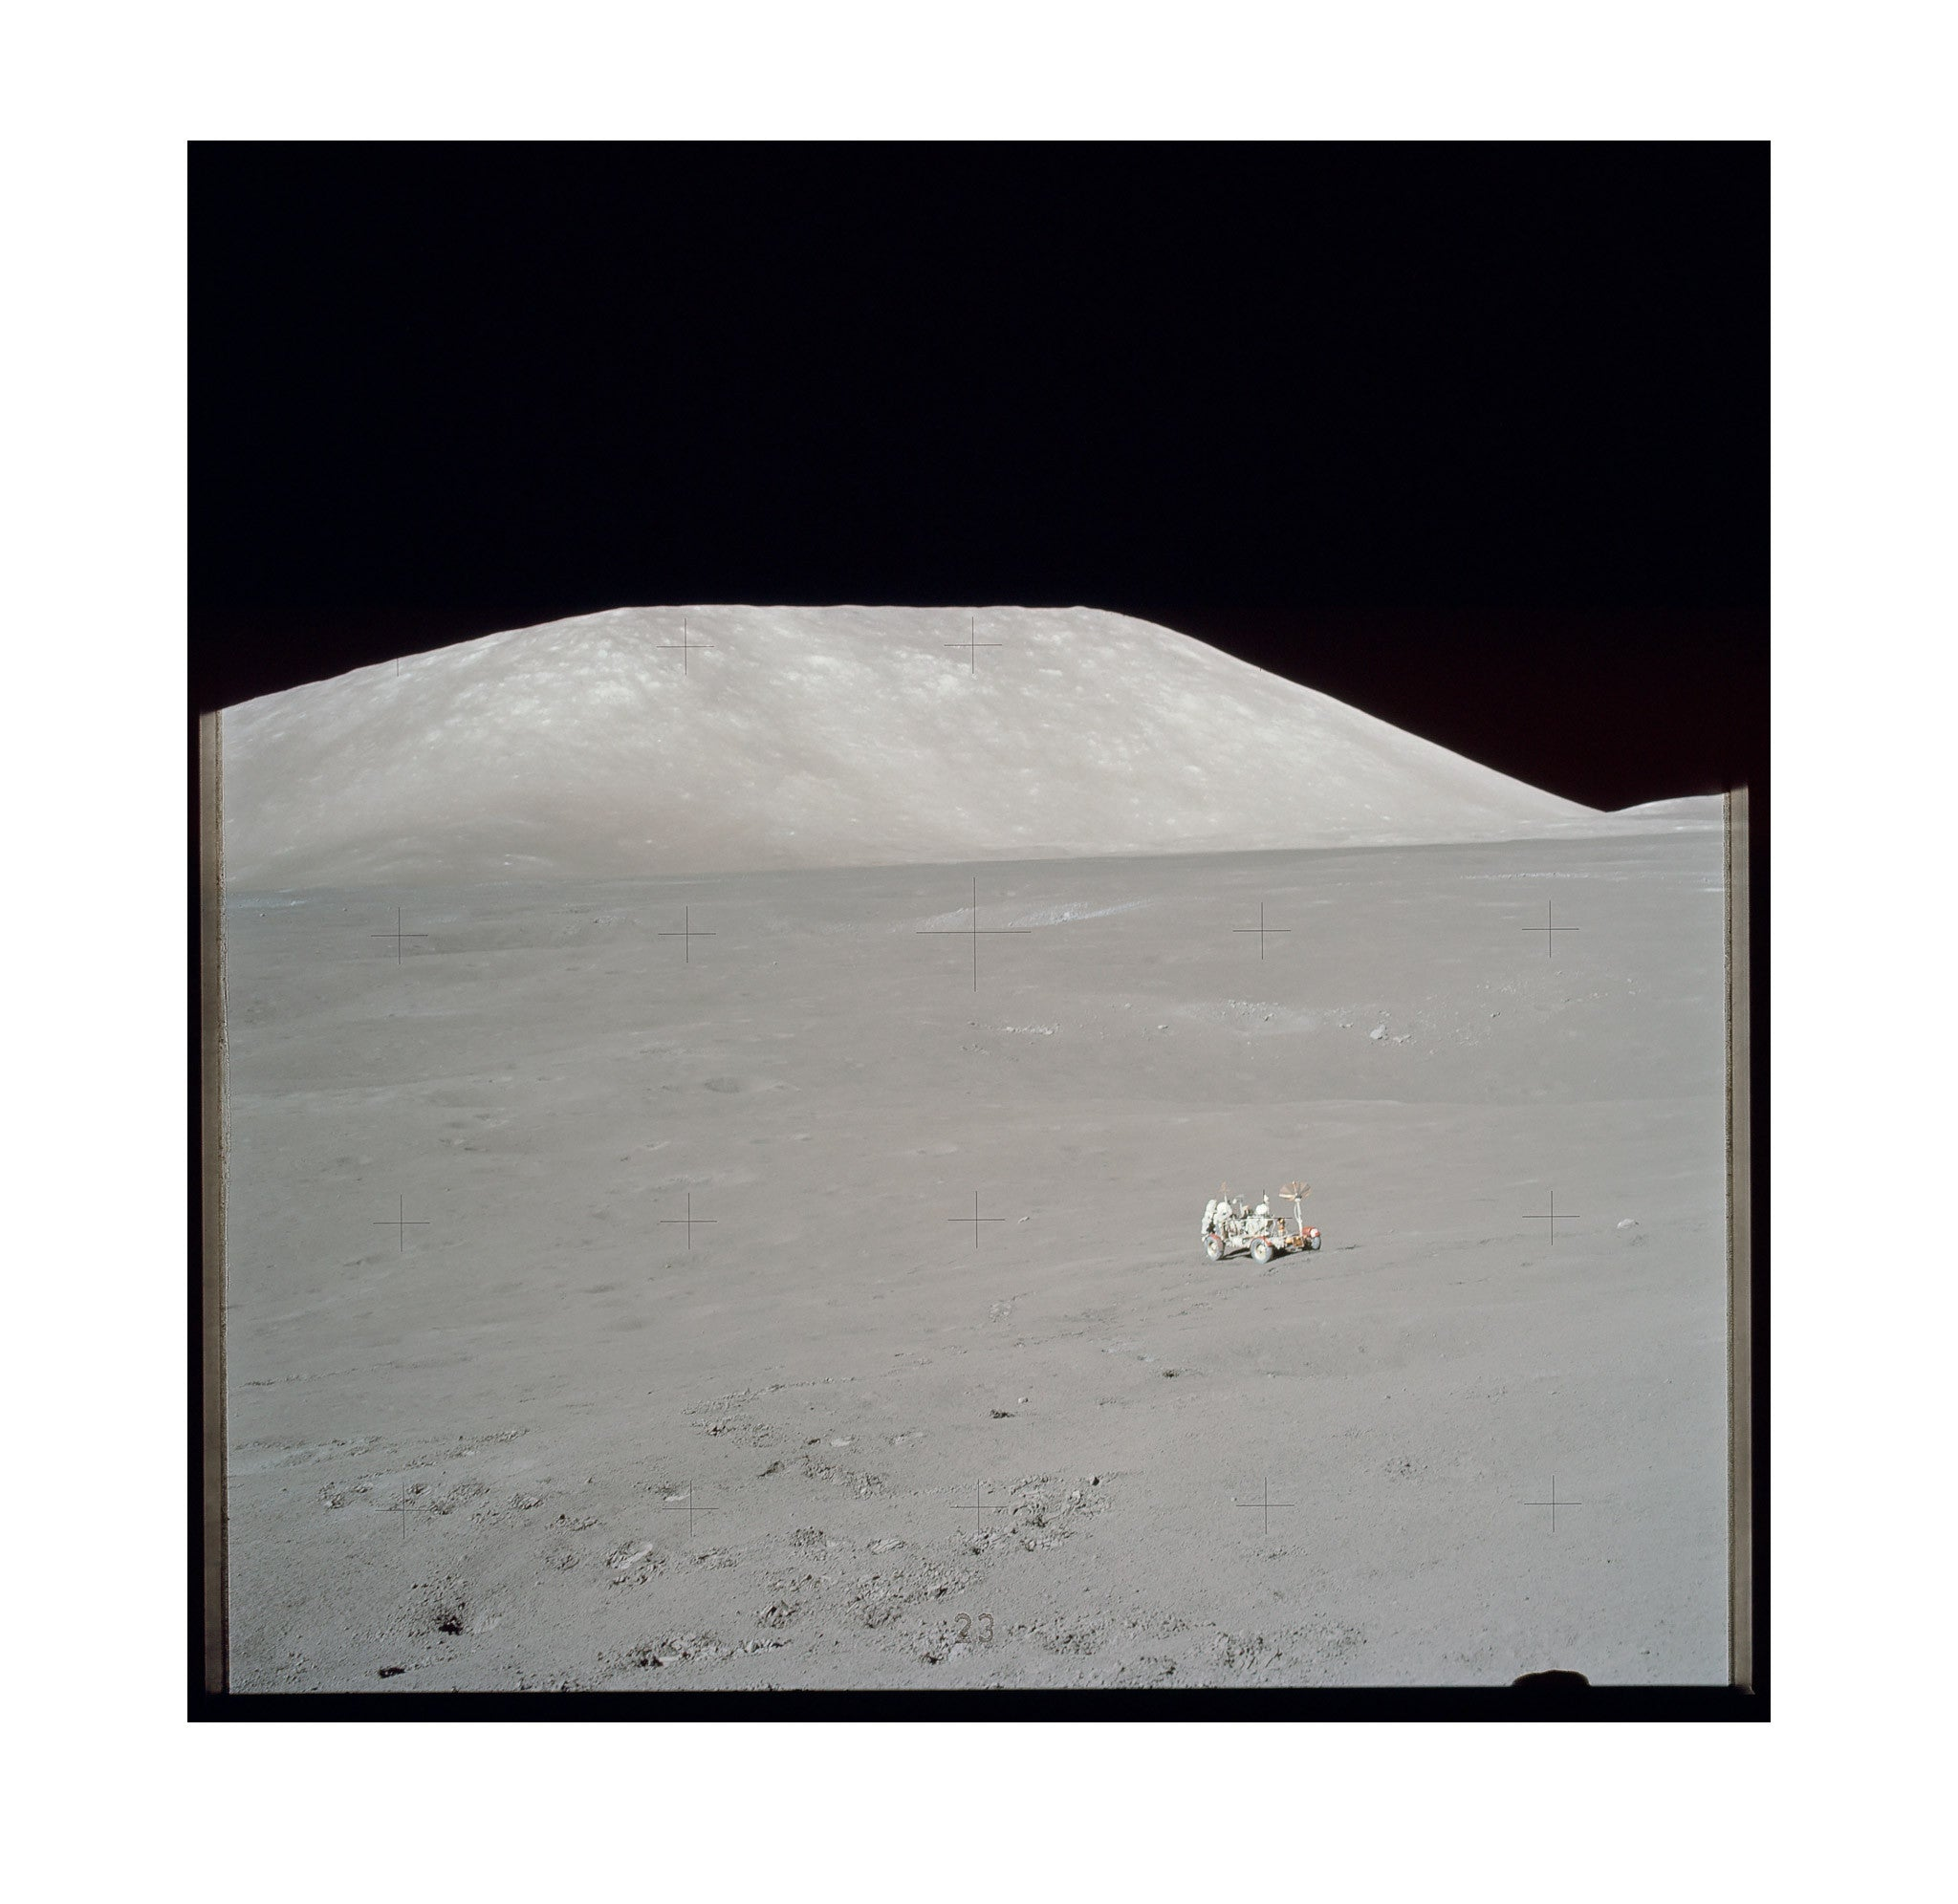 Apollo 17 – South Massif